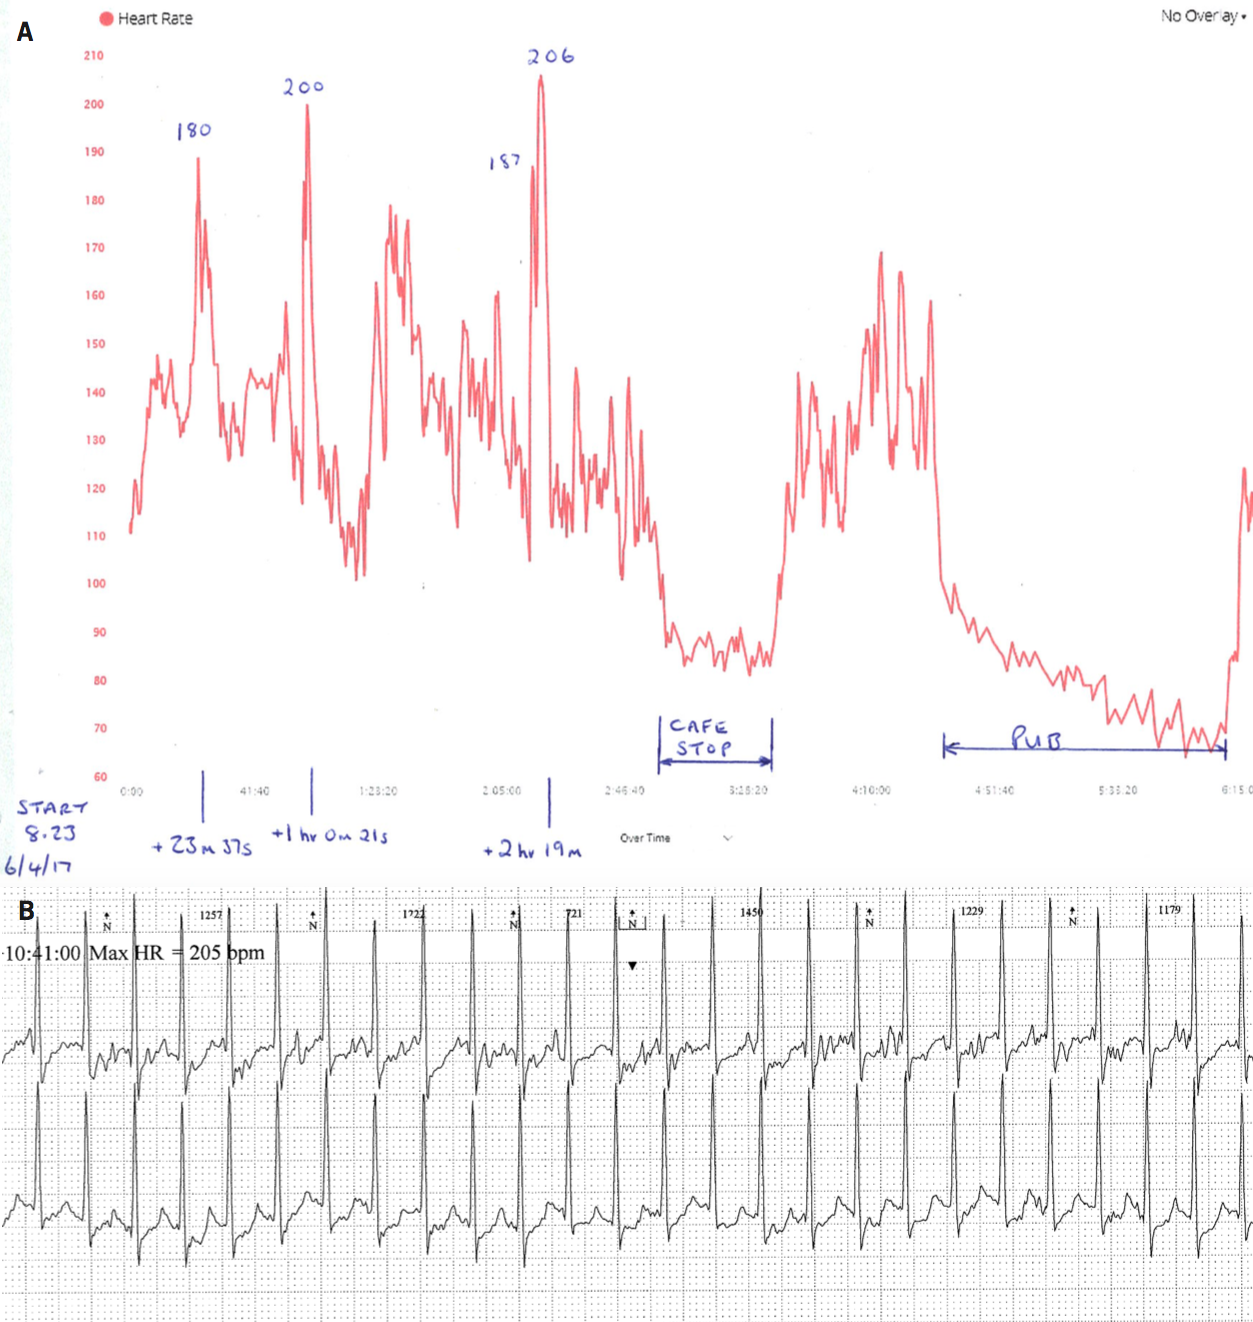 Doris - Figure 3. A. Patient heart rate data recorded by a Garmin chest strap monitor with Garmin Edge 1000 bike computer. Breaks in exercise have been added. B. Data from ambulatory monitoring on the same day at the time of the heart rate increase to 206 bpm and shows a narrow complex tachycardia